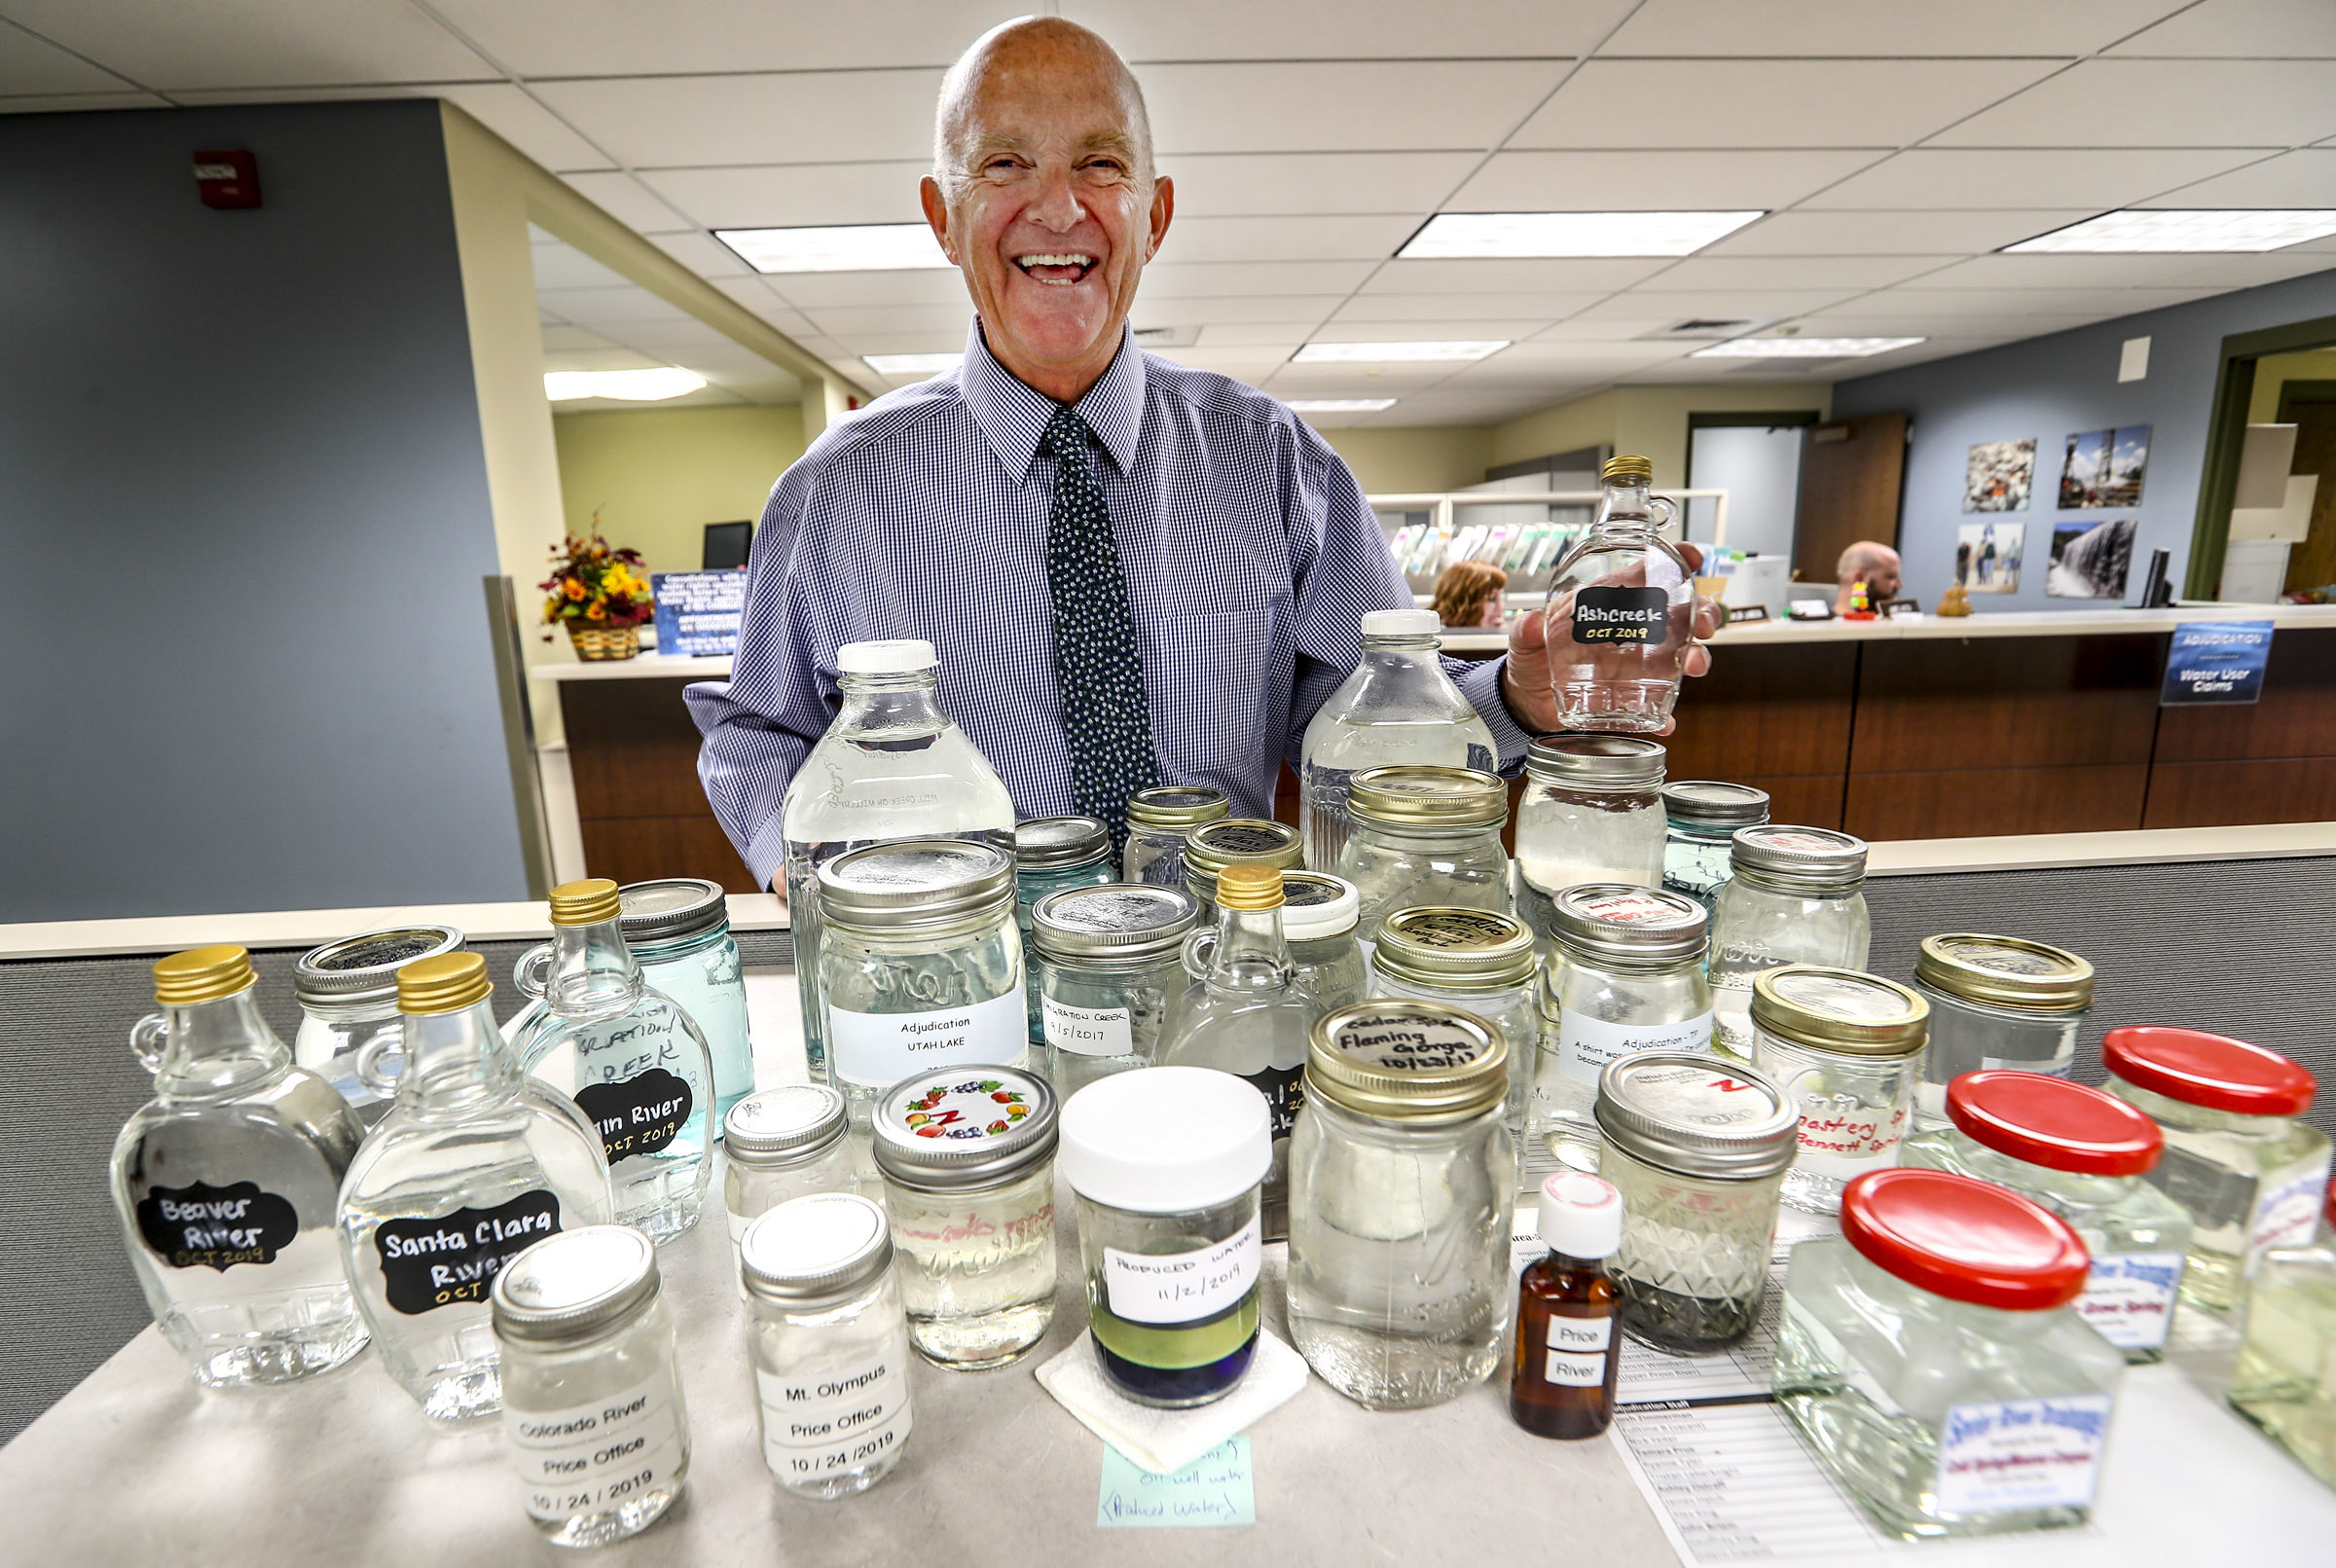 Utah State Engineer Kent Jones laughs as he holds samples of water from areas in the state where water rights were adjudicated. The samples were given to him by fellow employees at his retirement party at the Department of Natural Resources in Salt Lake City on Thursday, Nov. 7, 2019. Jones is retiring from his position this month.